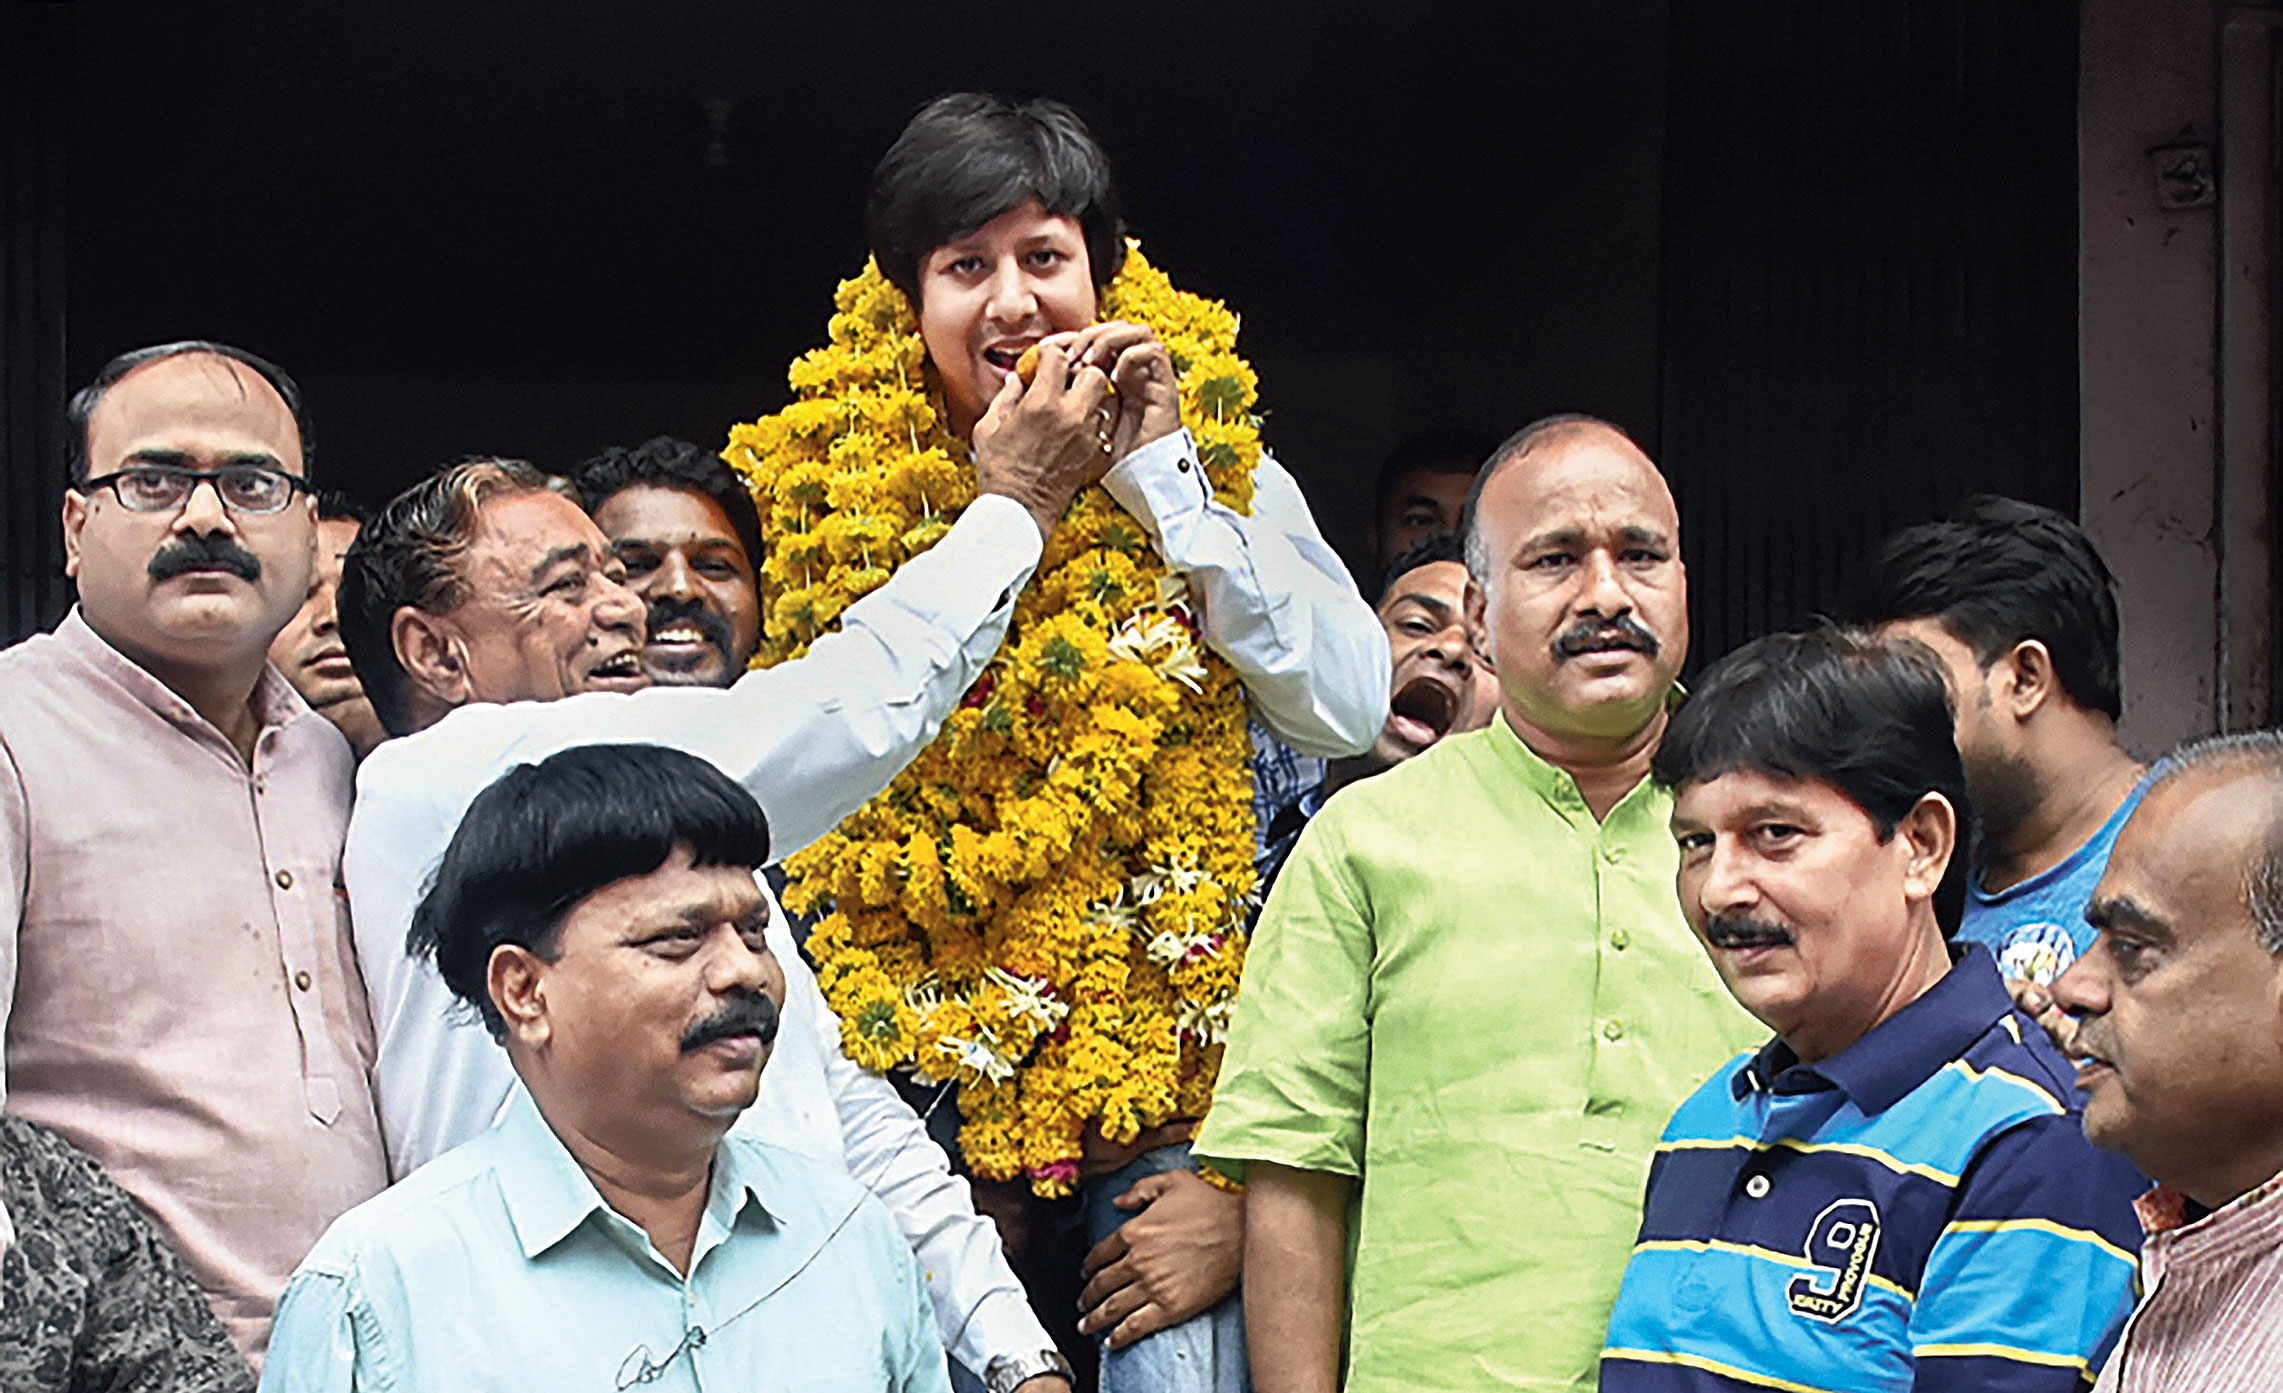 Akash being offered sweets after his release in Indore on Sunday.